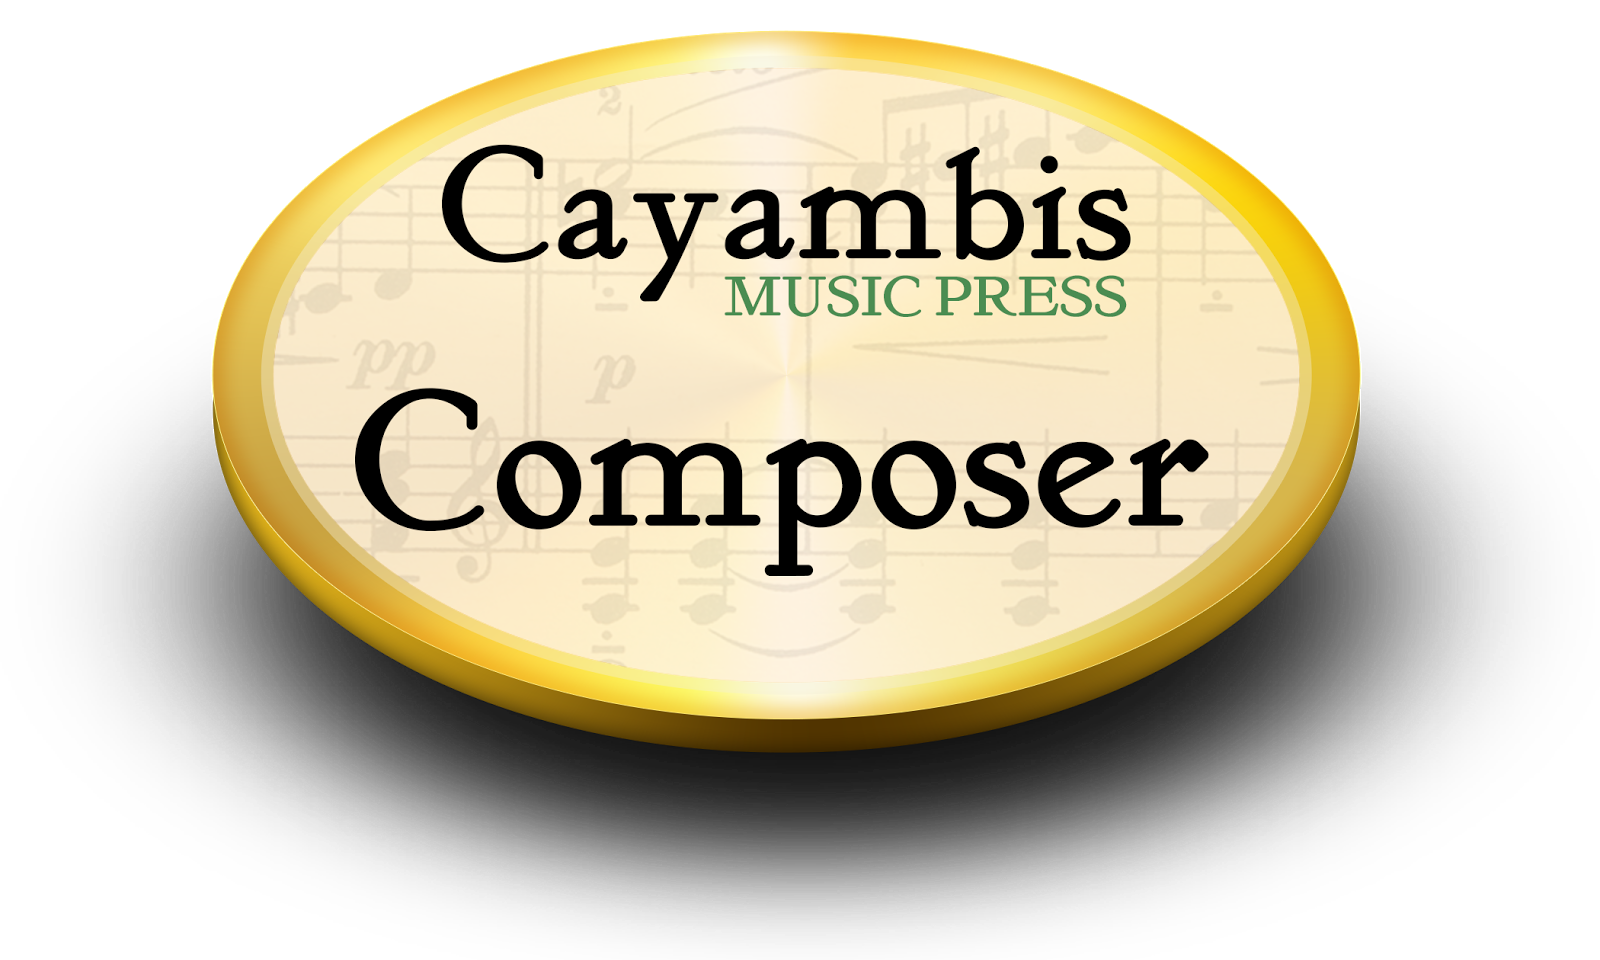 Visit Cayambis Music Press